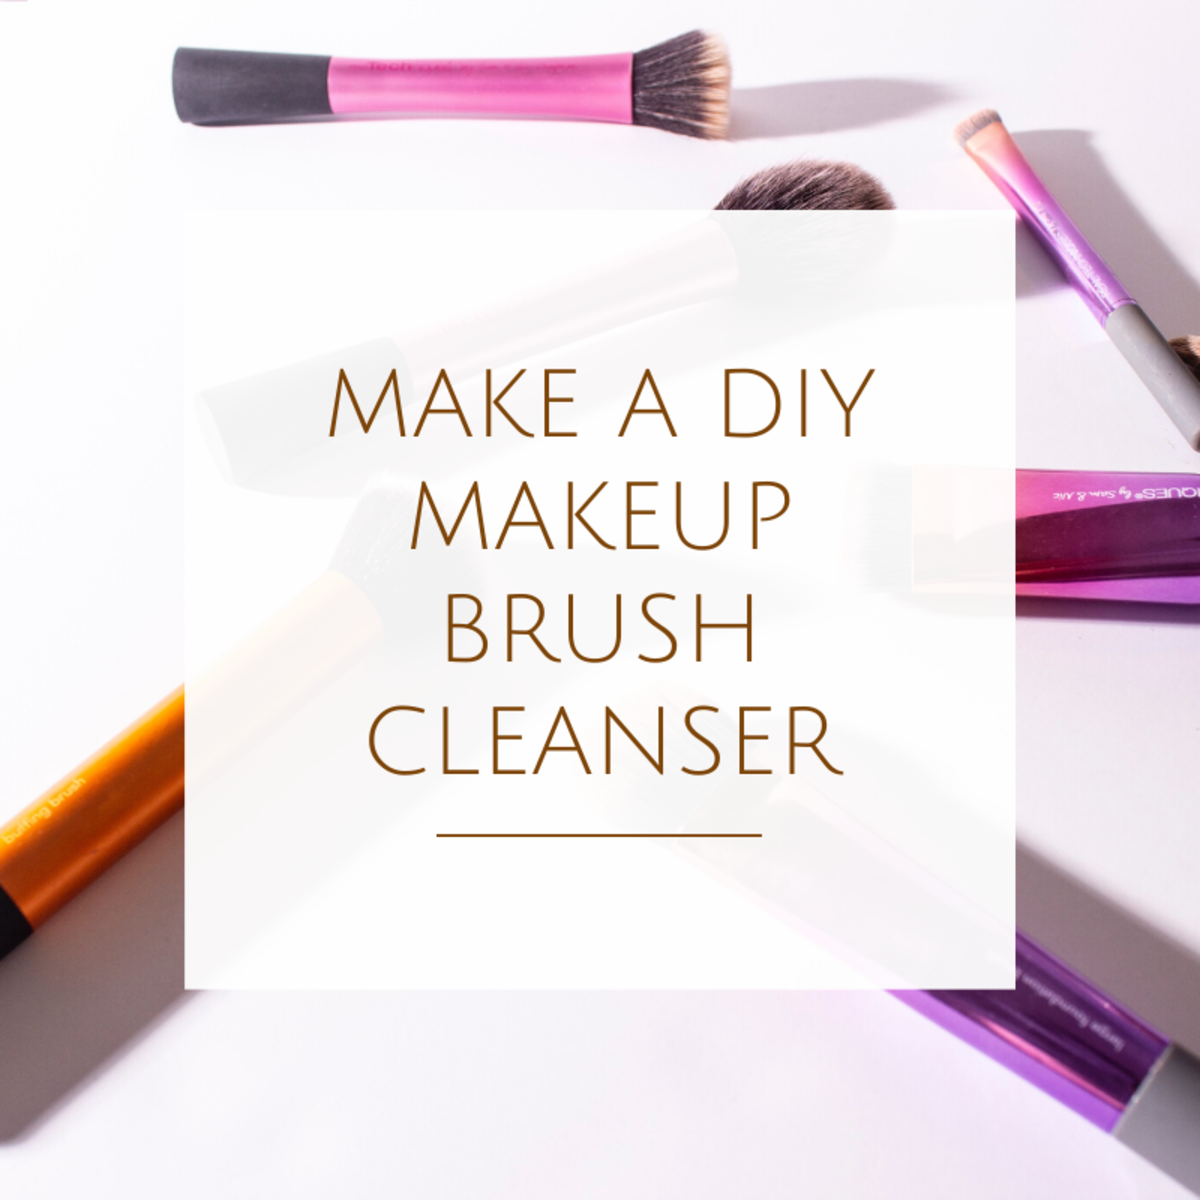 How to Make a DIY Makeup Brush Cleanser